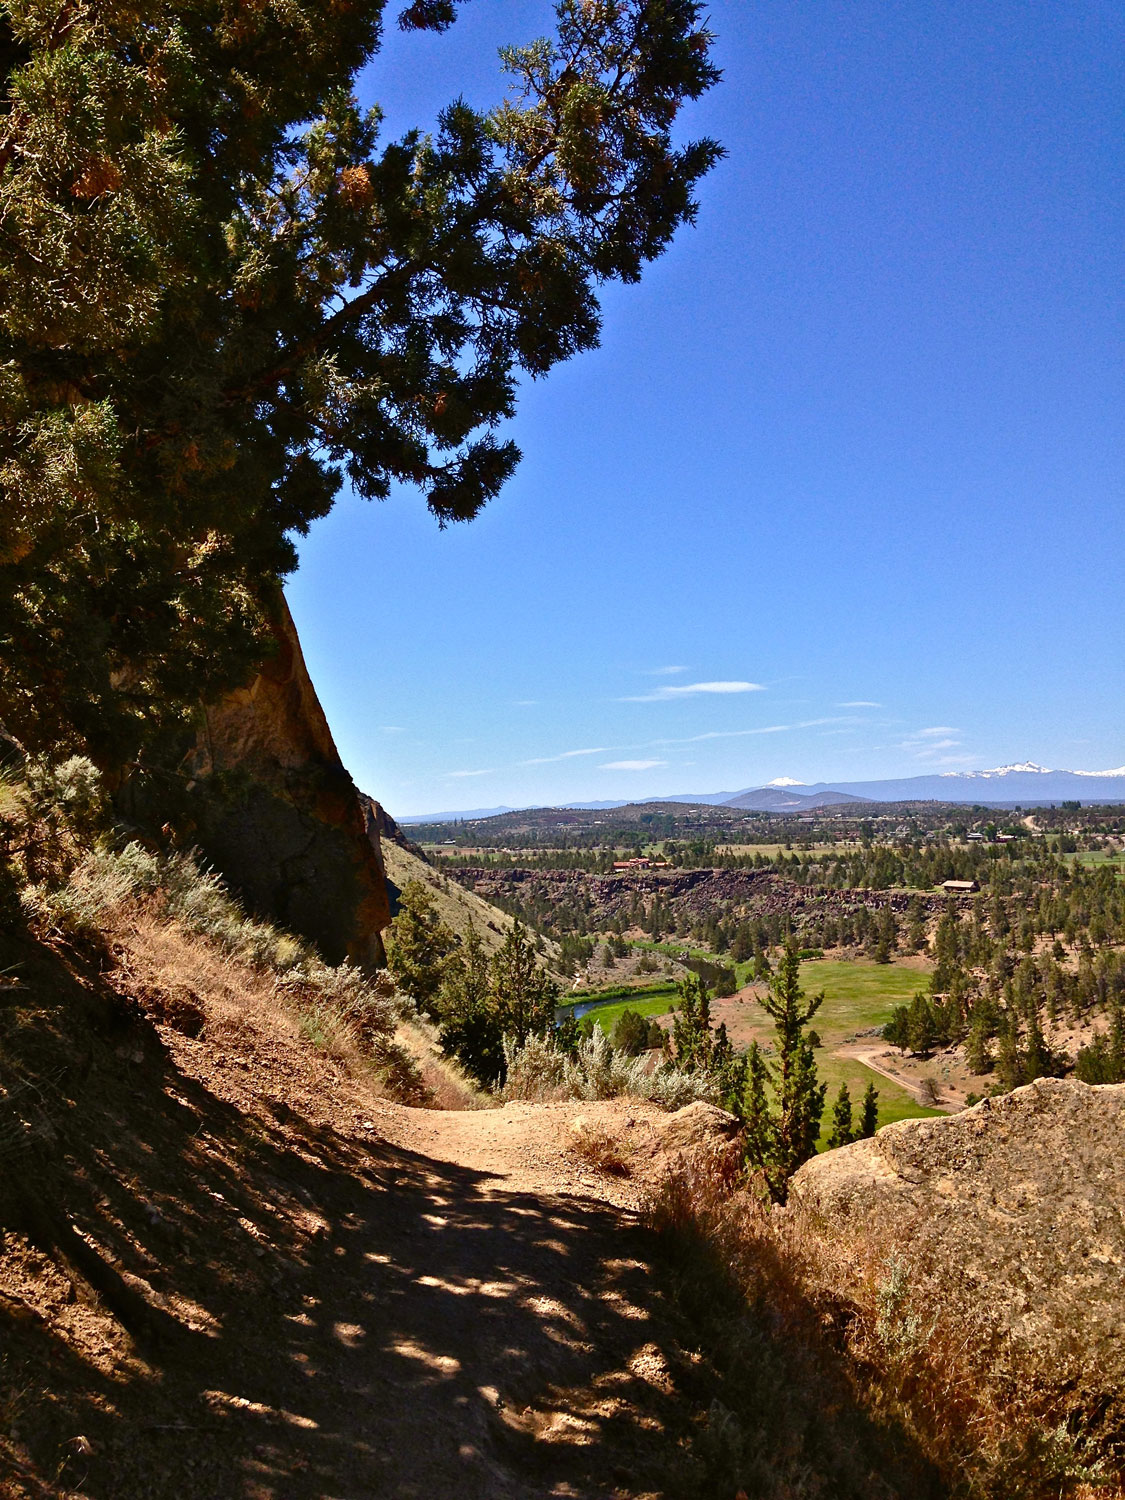 Heading down the Mesa Verde Trail back toward the main part of Smith Rock State Park.